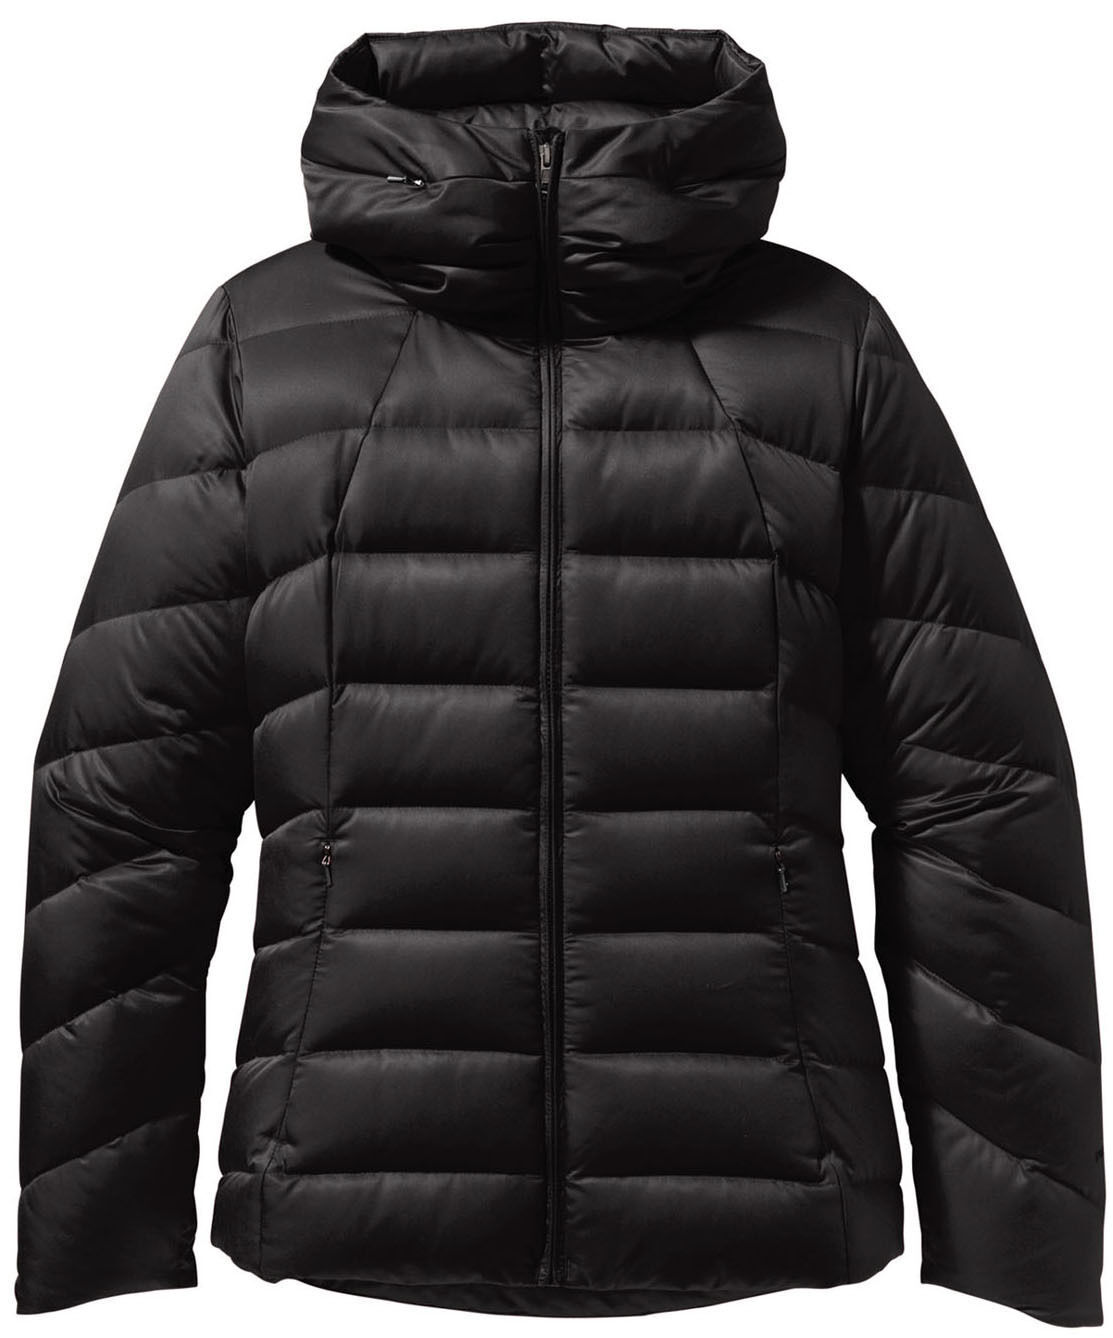 Top 10 Winter Jackets for Women | eBay